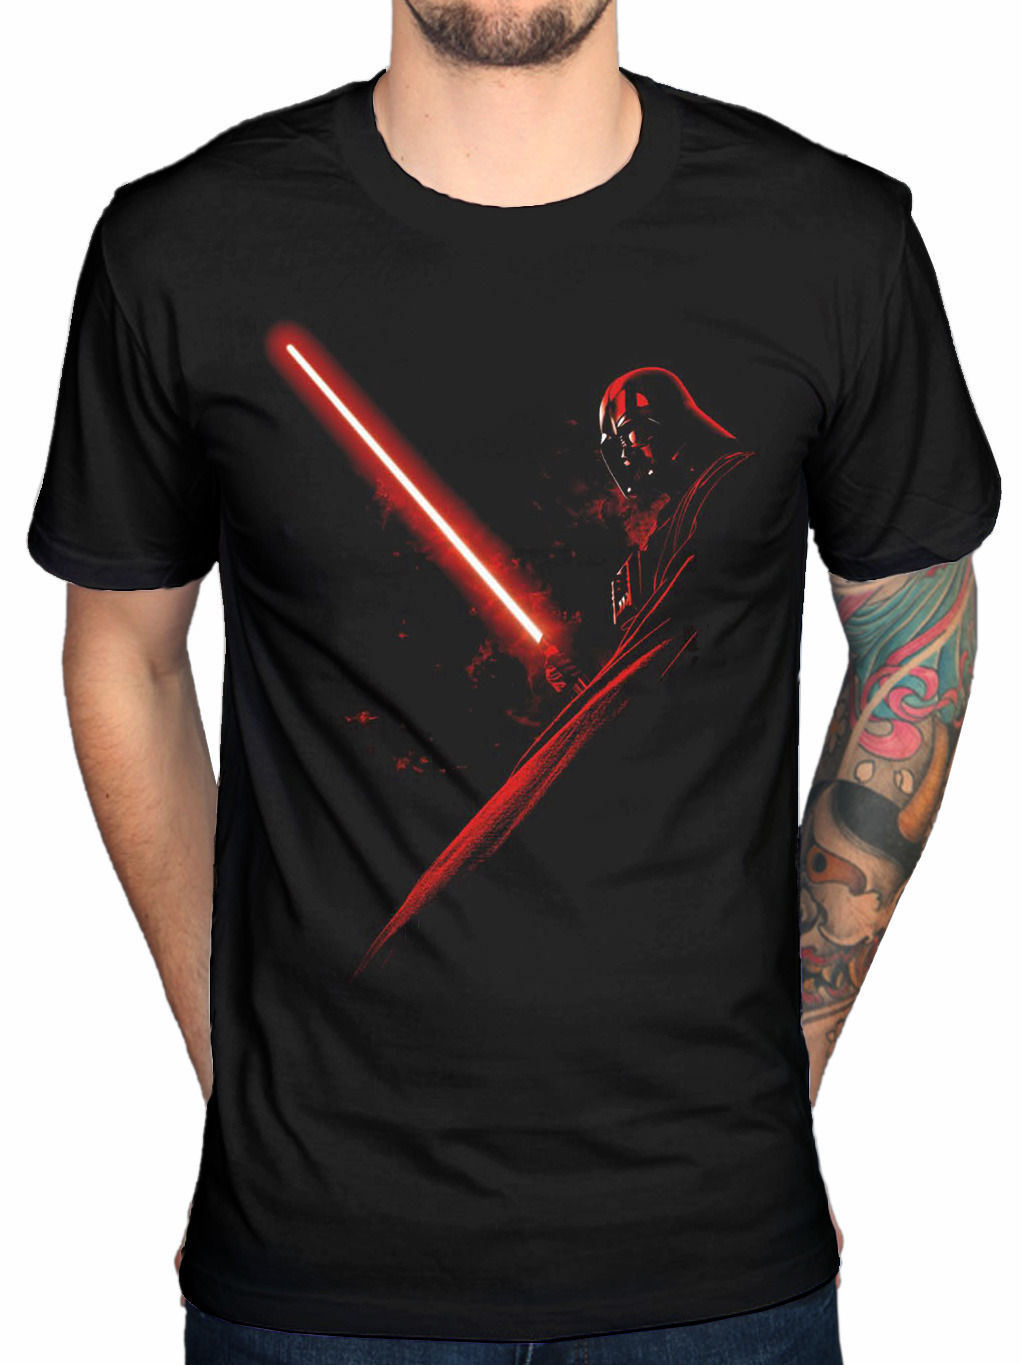 Official La Guerre Des Vador Ombre T Shirt Film Yoda Darth Vader The